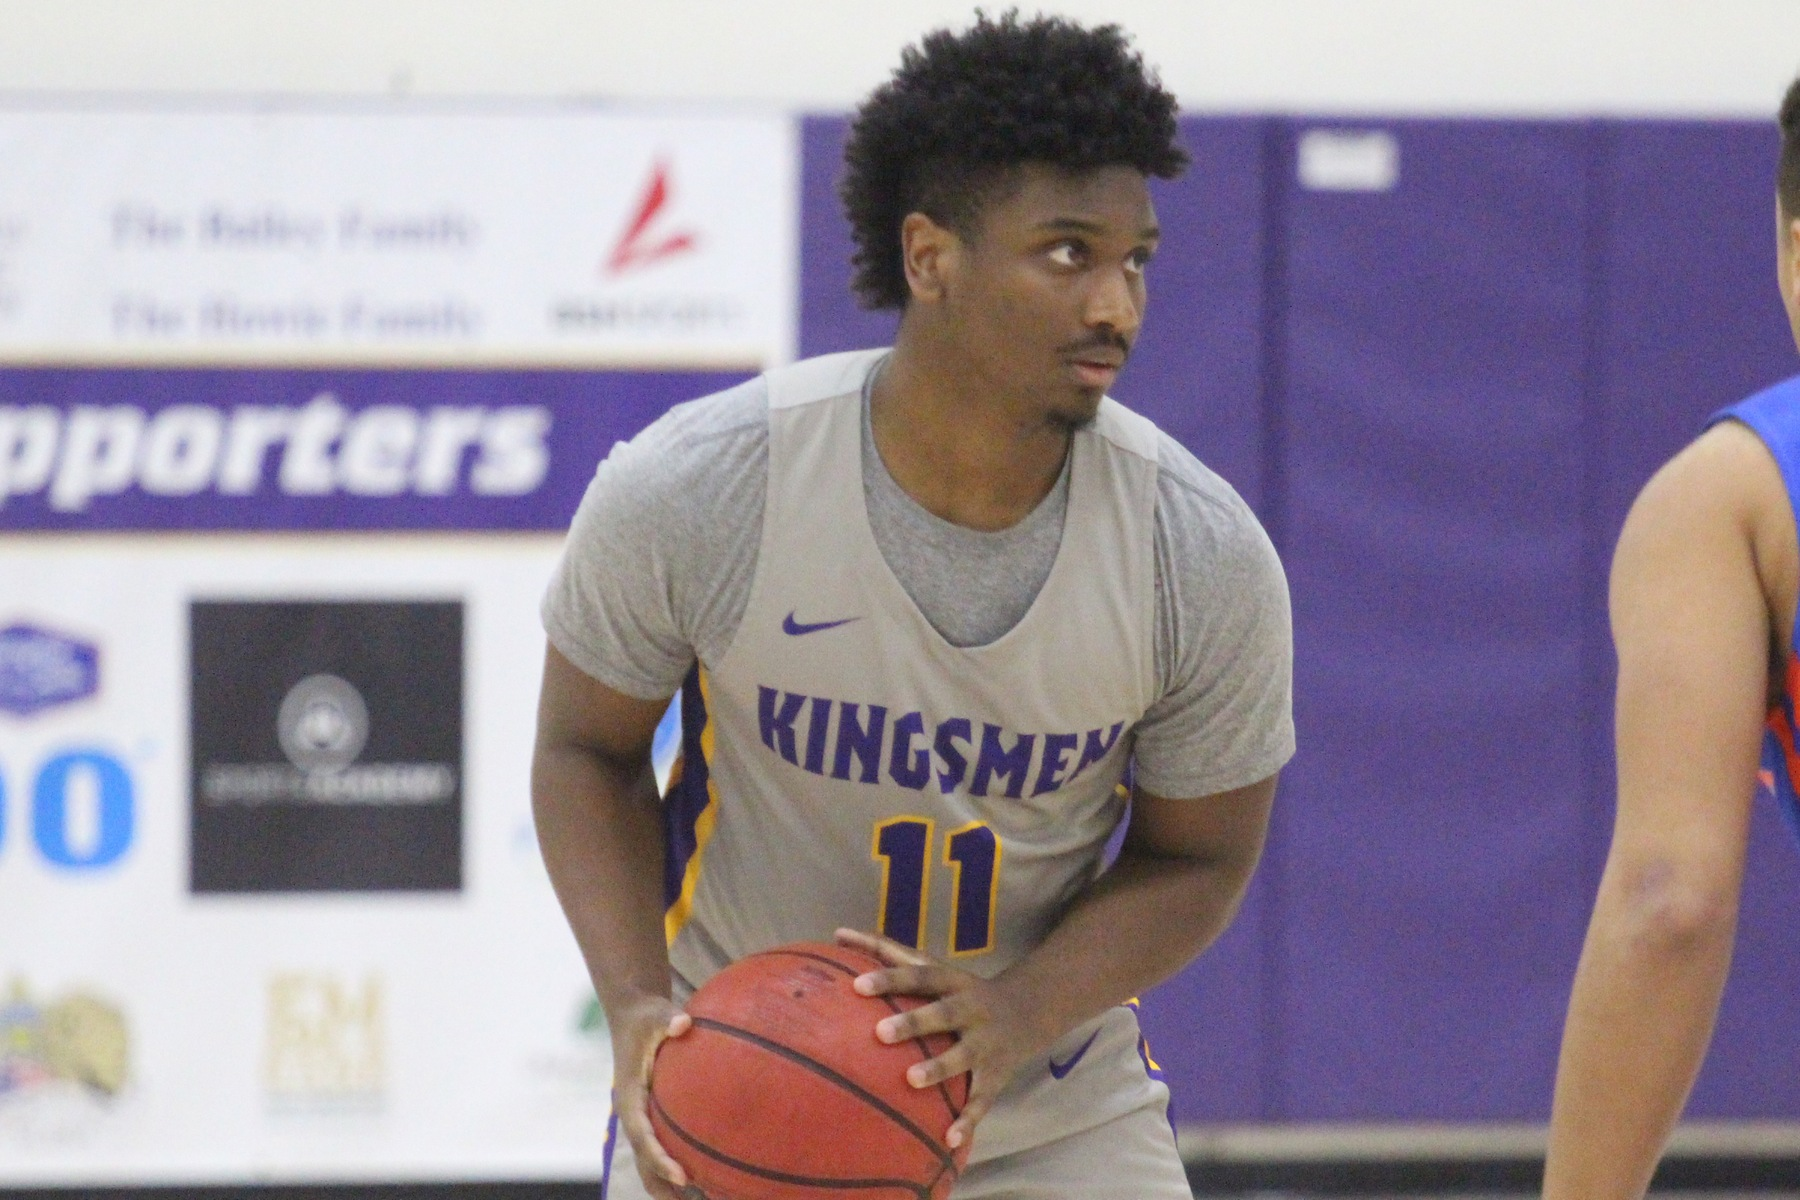 Kingsmen Rout Leopards; Keep Playoff Hopes Alive